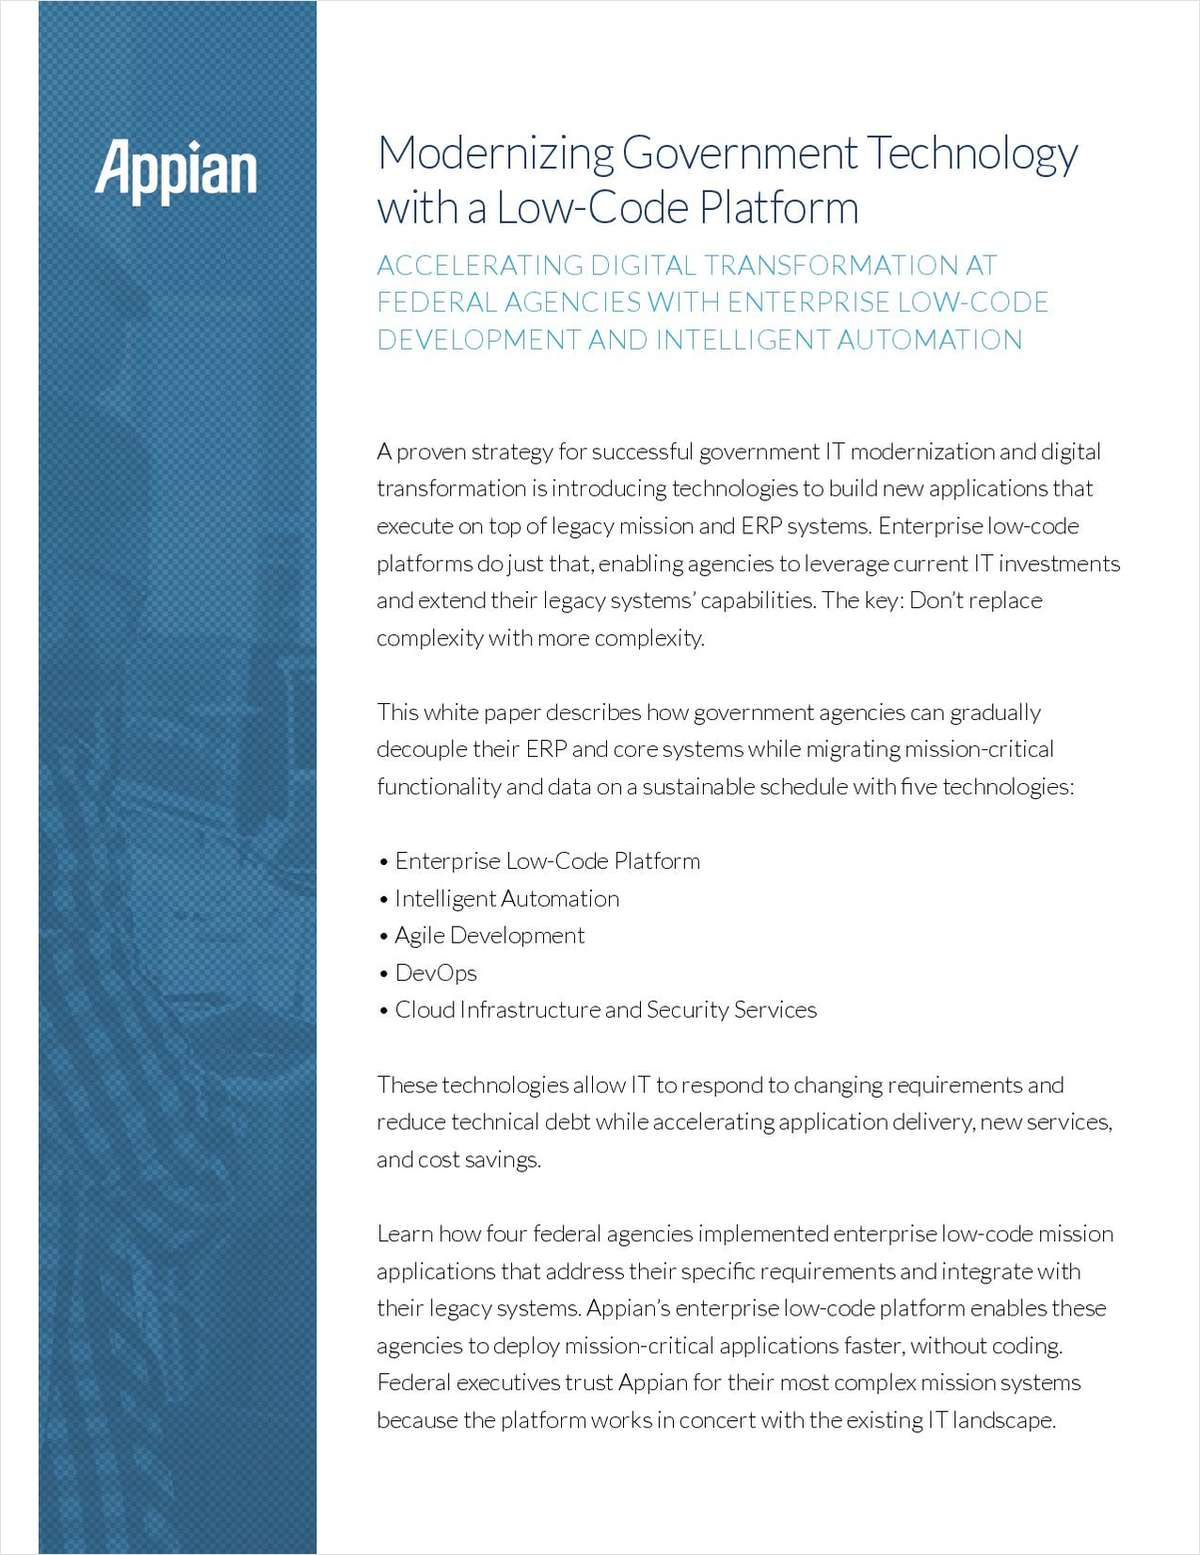 Modernizing Government Technology with a Low-Code Platform